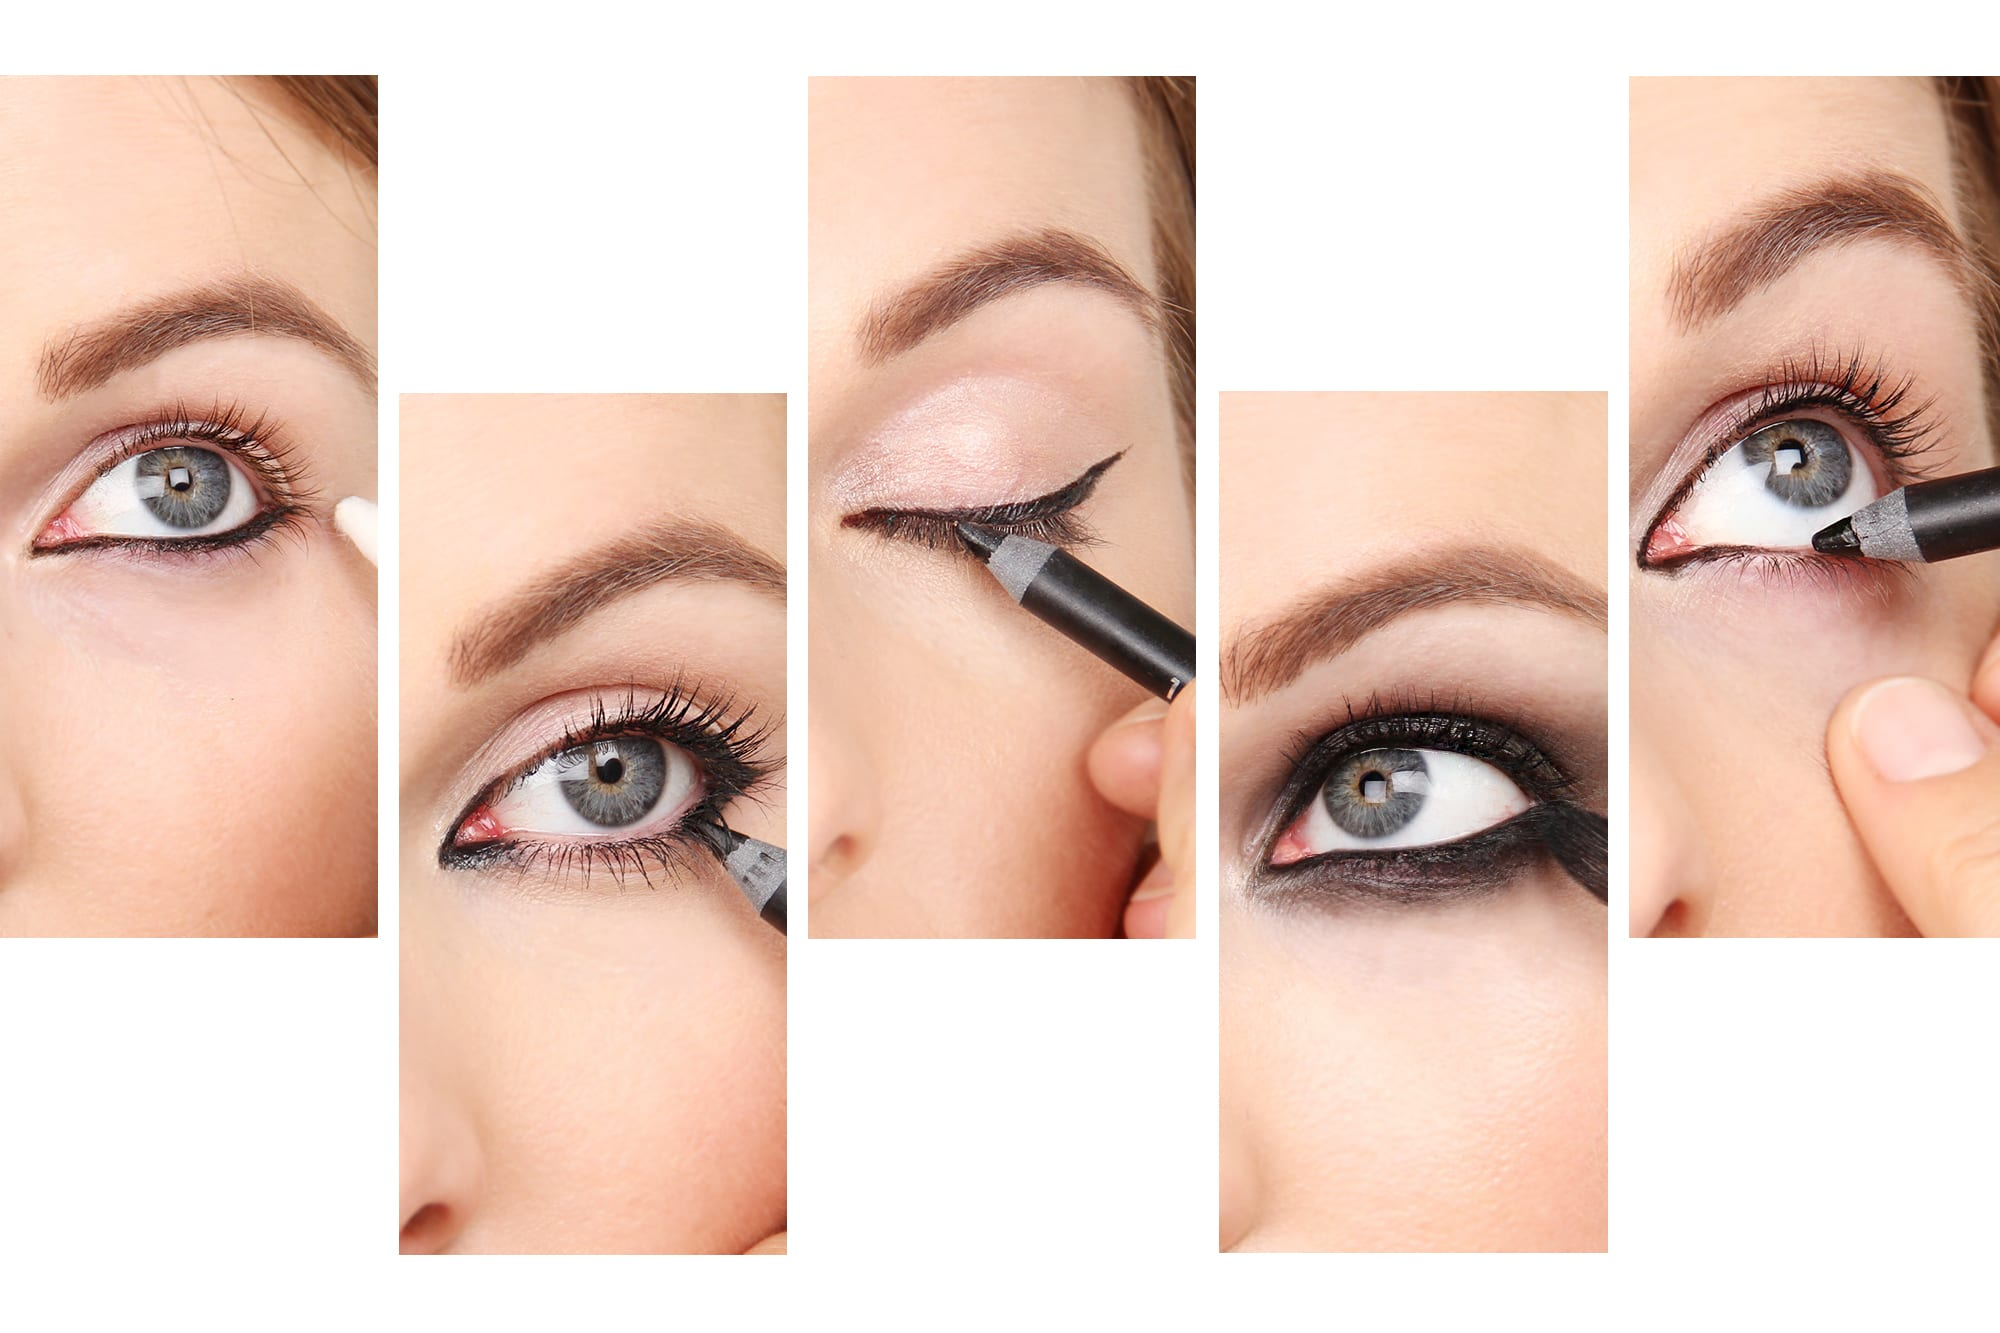 Beauty School: Five Ways To Apply Eyeliner